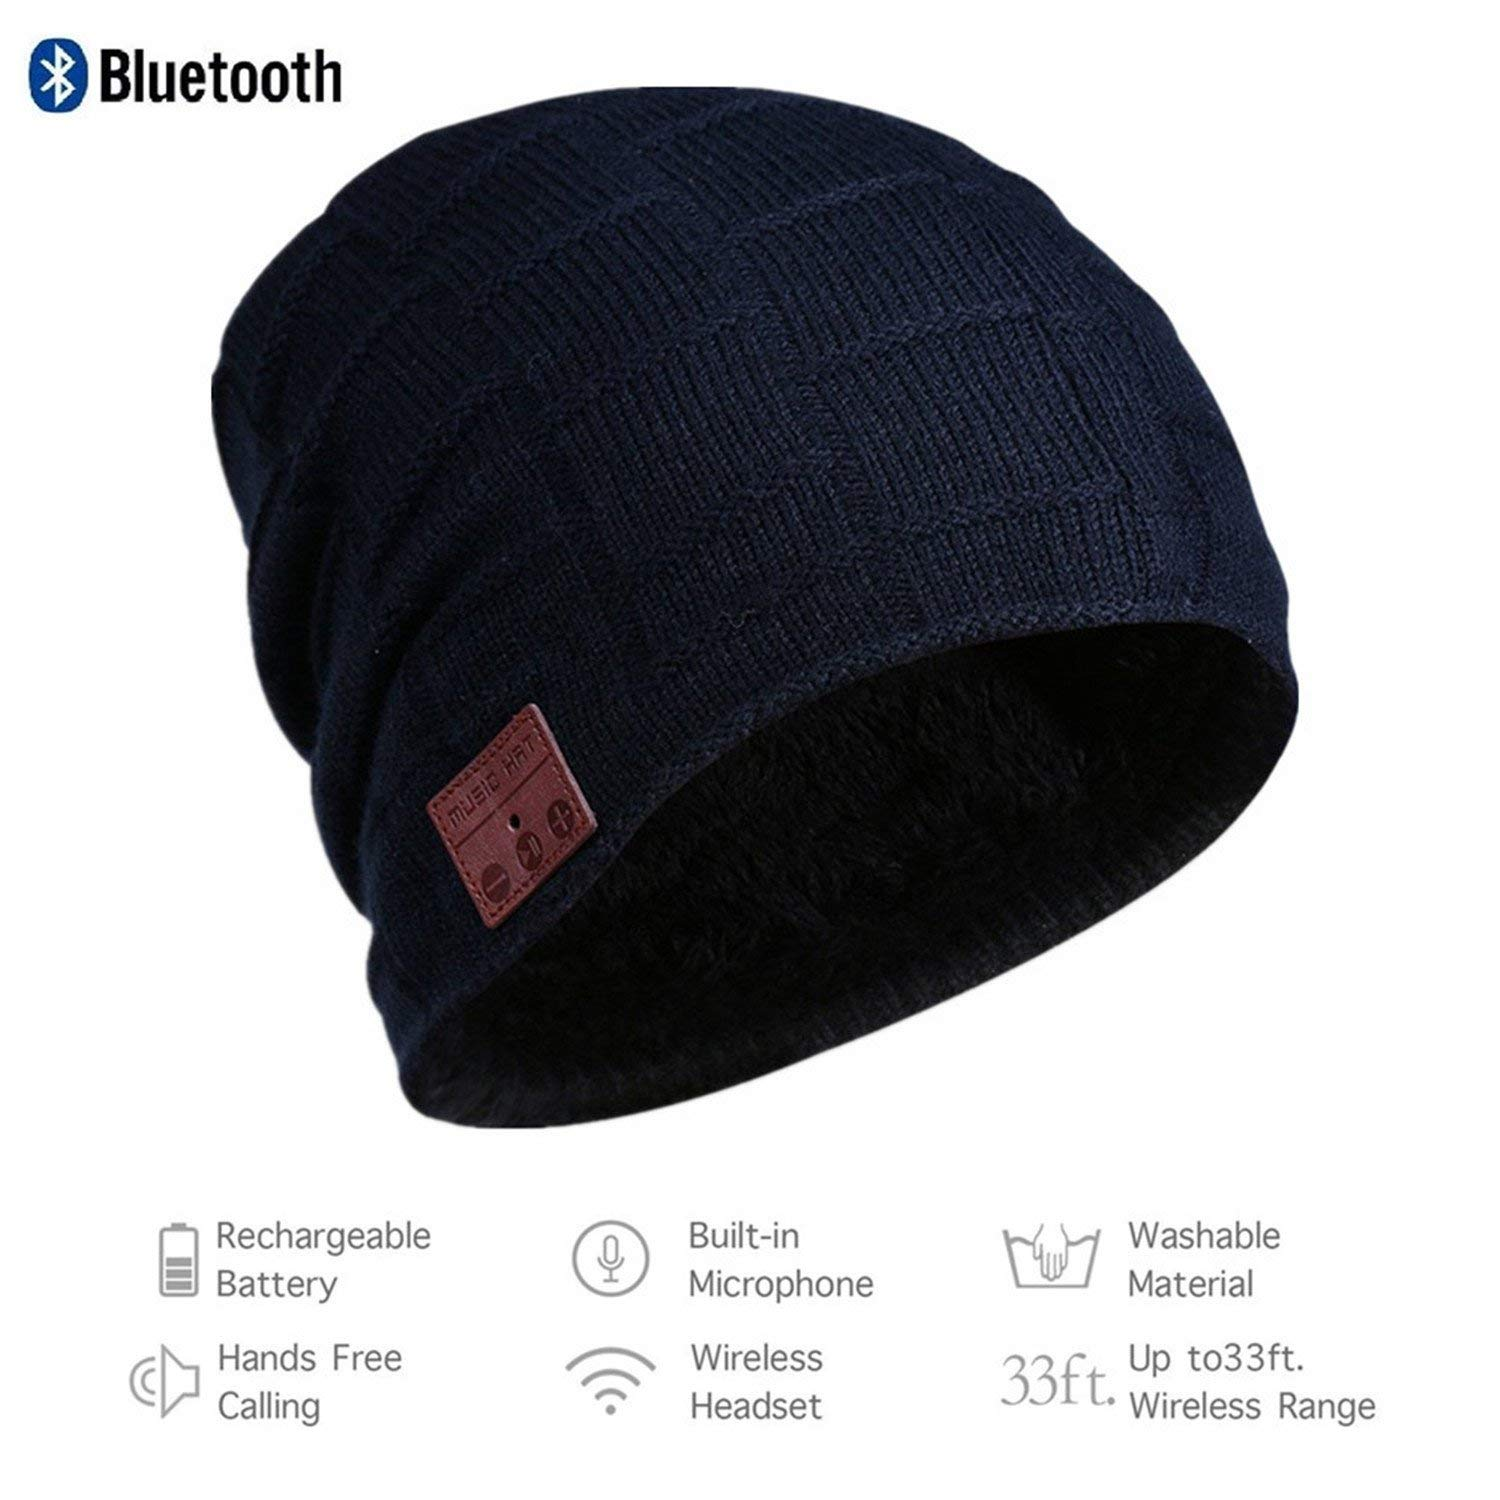 267a6cda5be Wireless Bluetooth 4.2 Beanie Hat Music Cap Musicphone Speakerphone Stereo Headphone  Headset Earphone Speaker Mic Outdoor Sport Skiing Skating with Charger ...